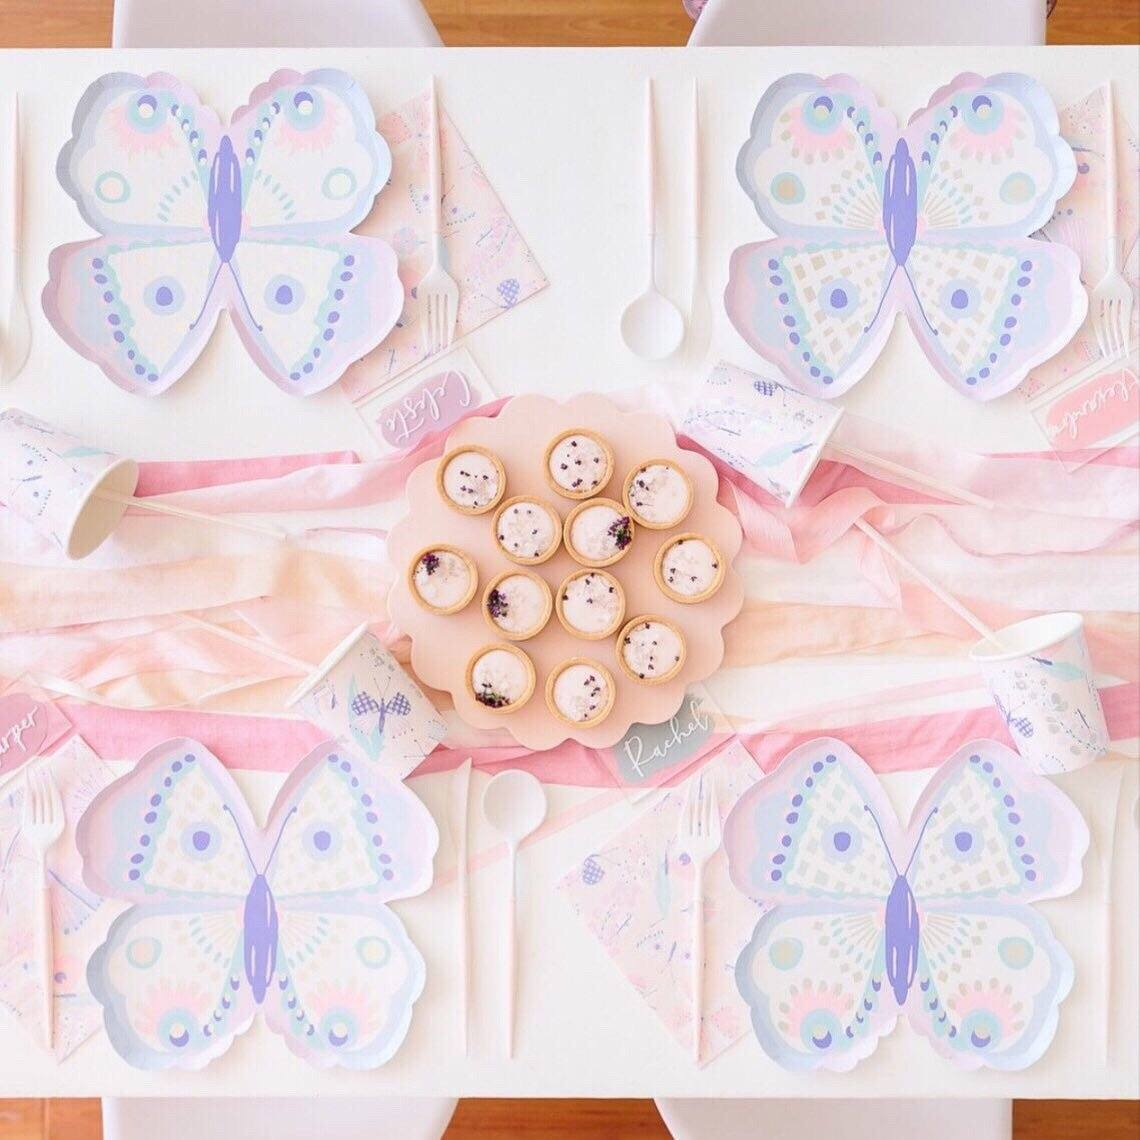 CUPS - DAYDREAM SOCIETY FLUTTER BUTTERFLY, Cups, Daydream Society - Bon + Co. Party Studio